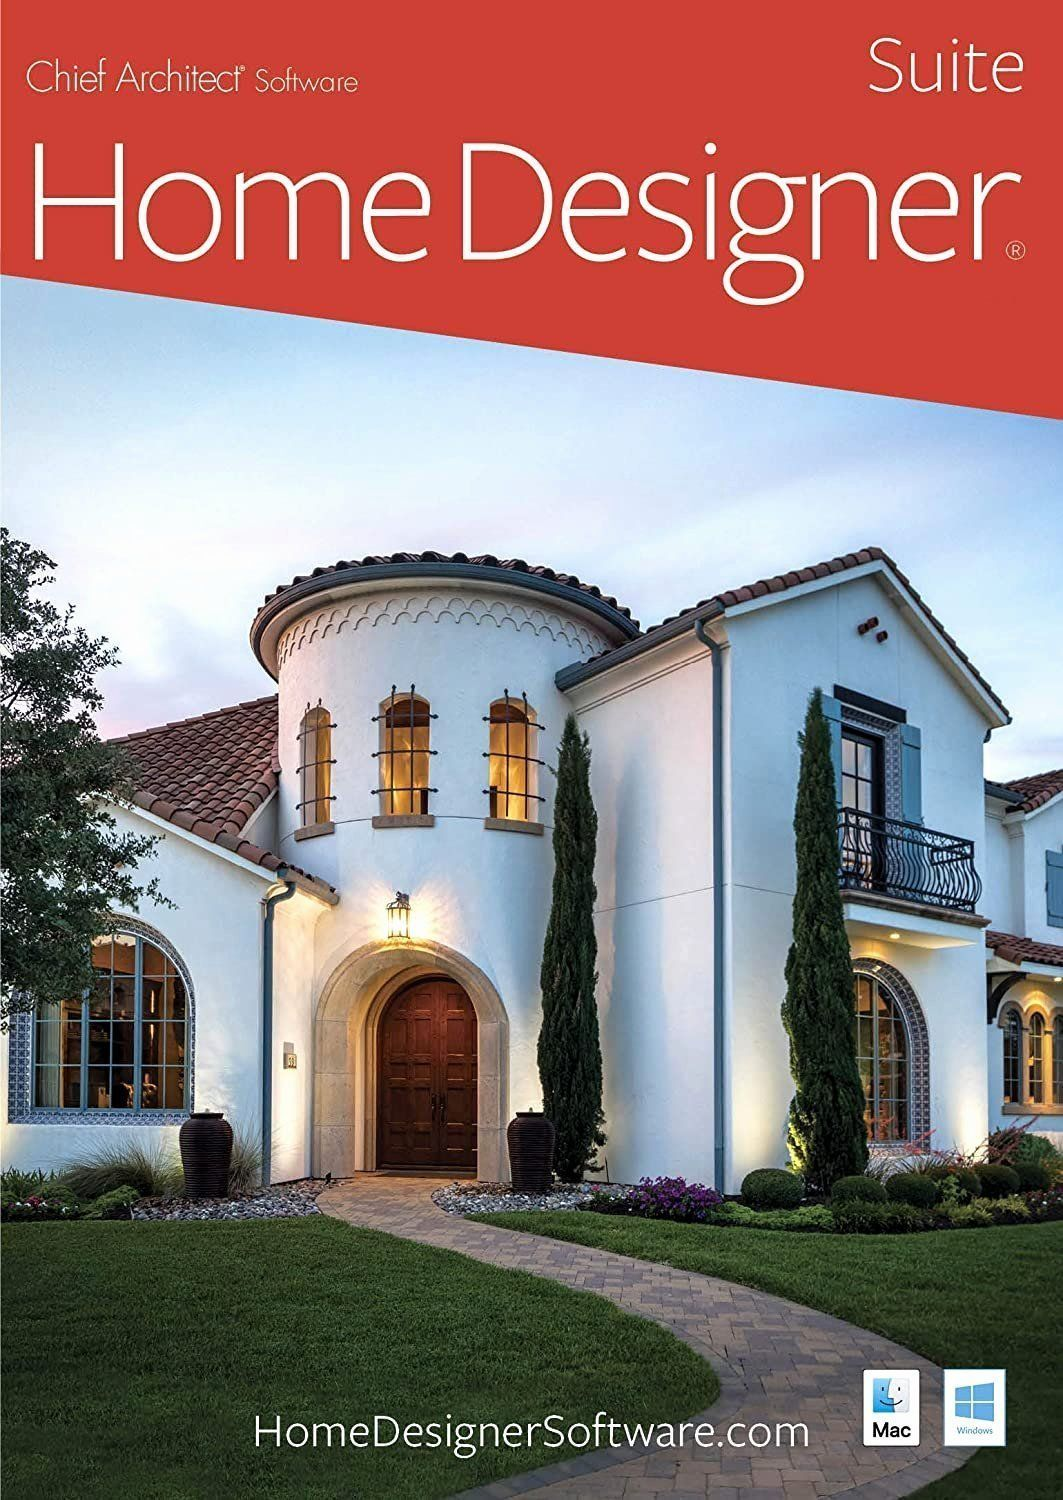 3d Home Design Software Free Download For Windows 7 New Home Designer Suite Pc Download In 2020 Home Designer Suite 3d Home Design Software 3d Home Design